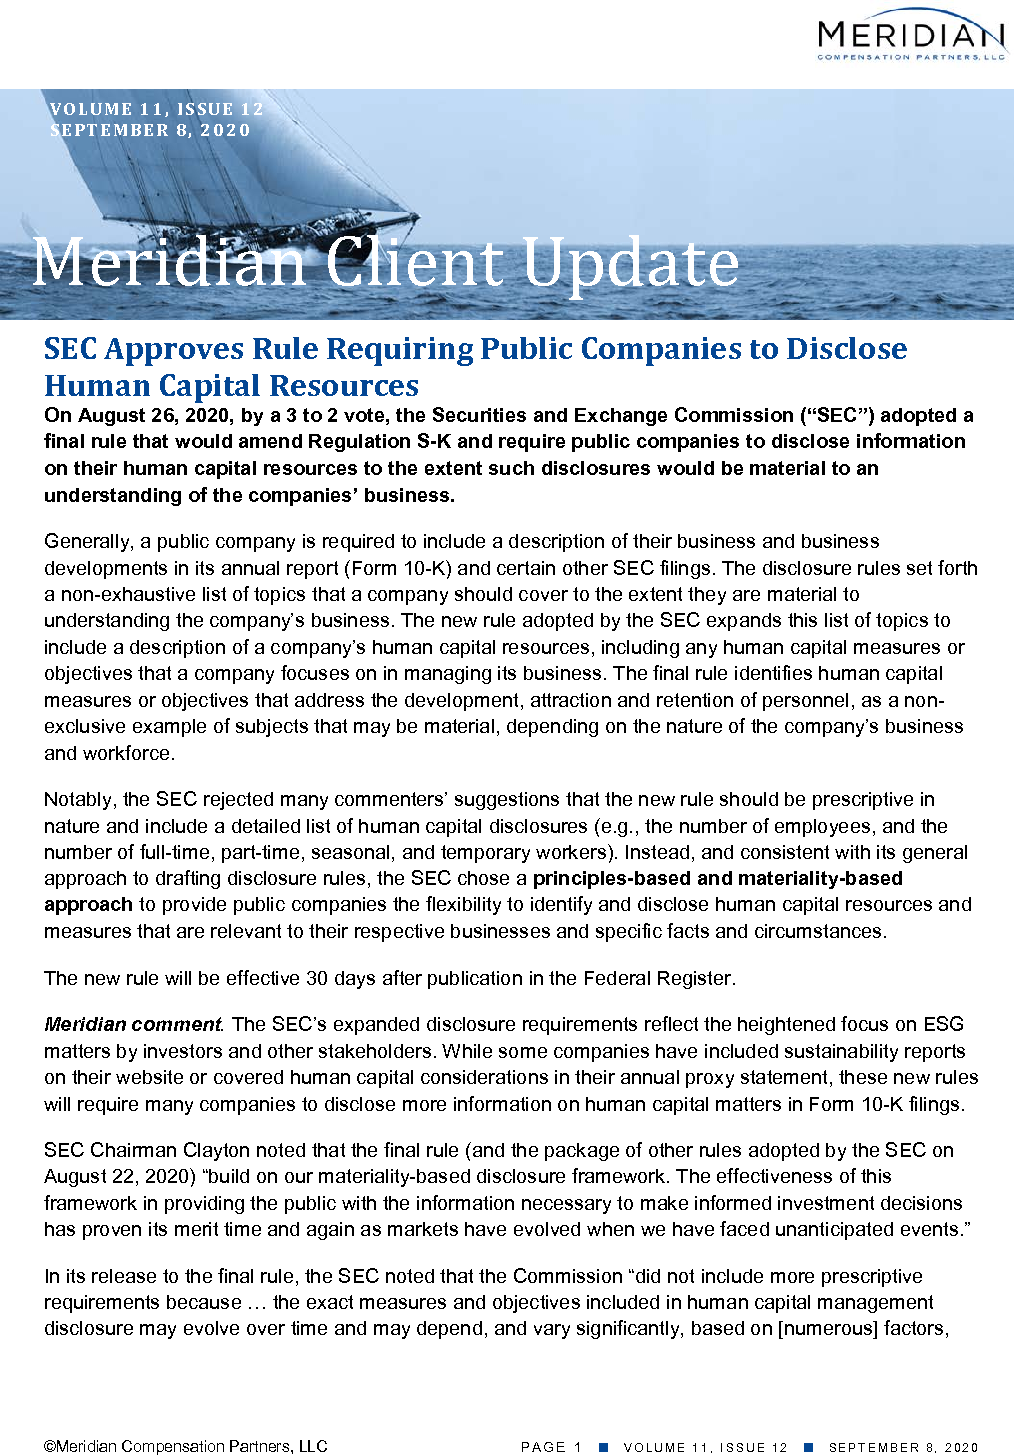 SEC Approves Rule Requiring Public Companies to Disclose Human Capital Resources (PDF)